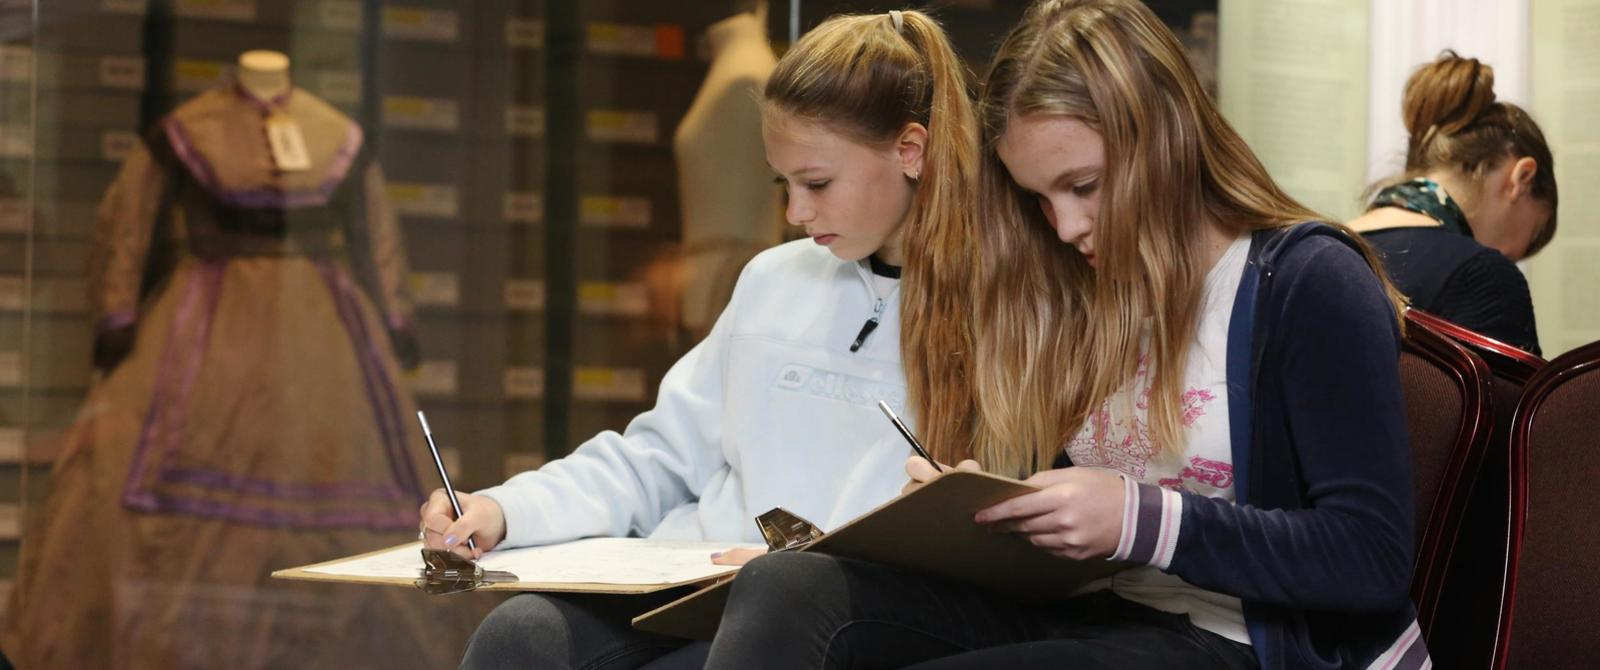 Image: Students sketching in the galleries